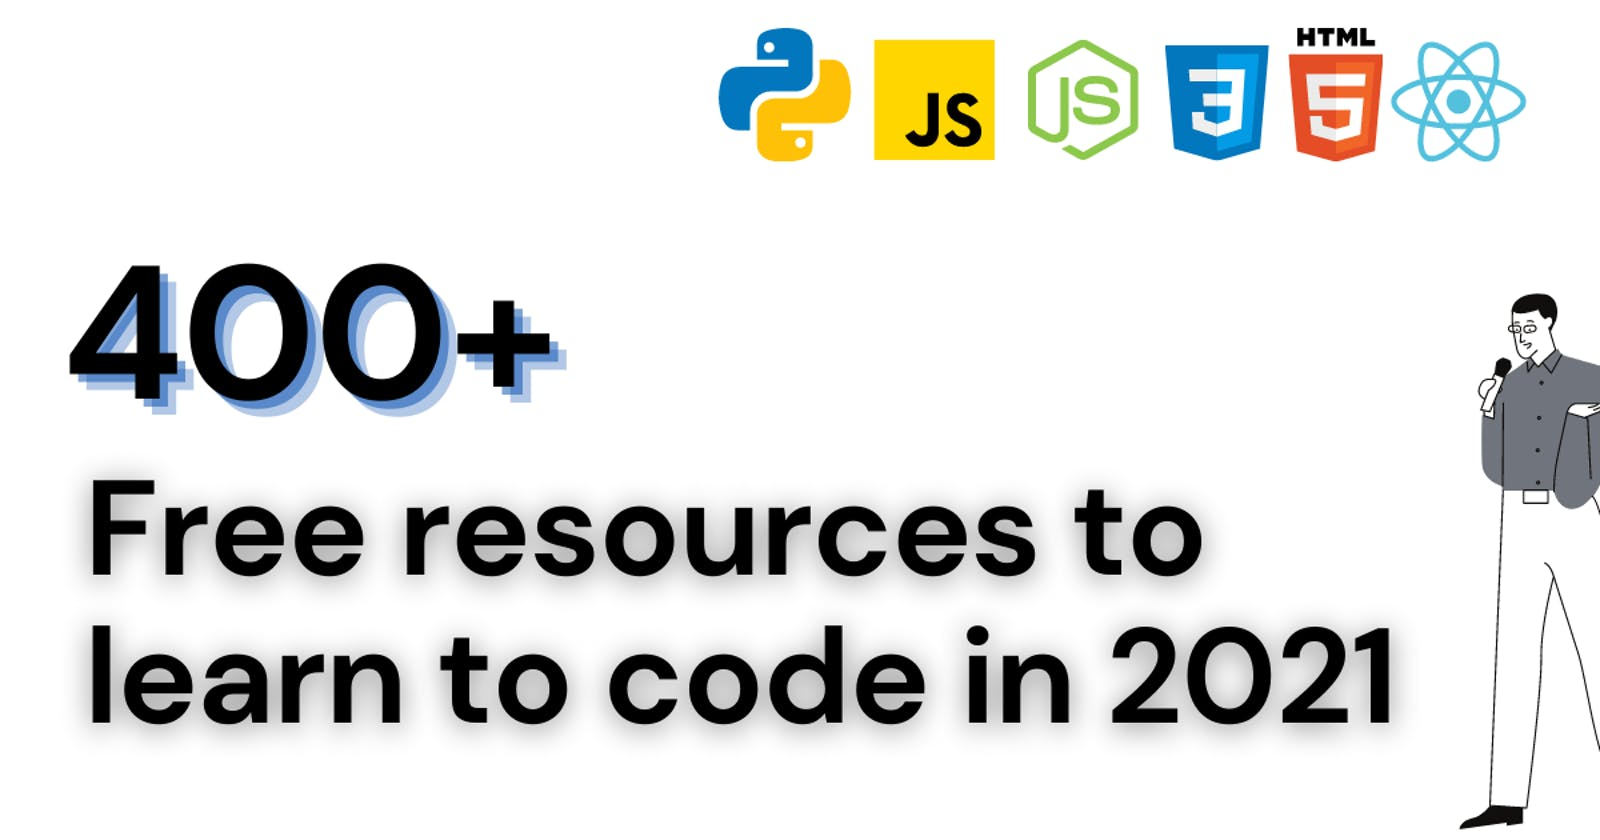 400+ Free resources to learn to code in 2021, MERN, DESIGN, MEAN, FULLSTACK